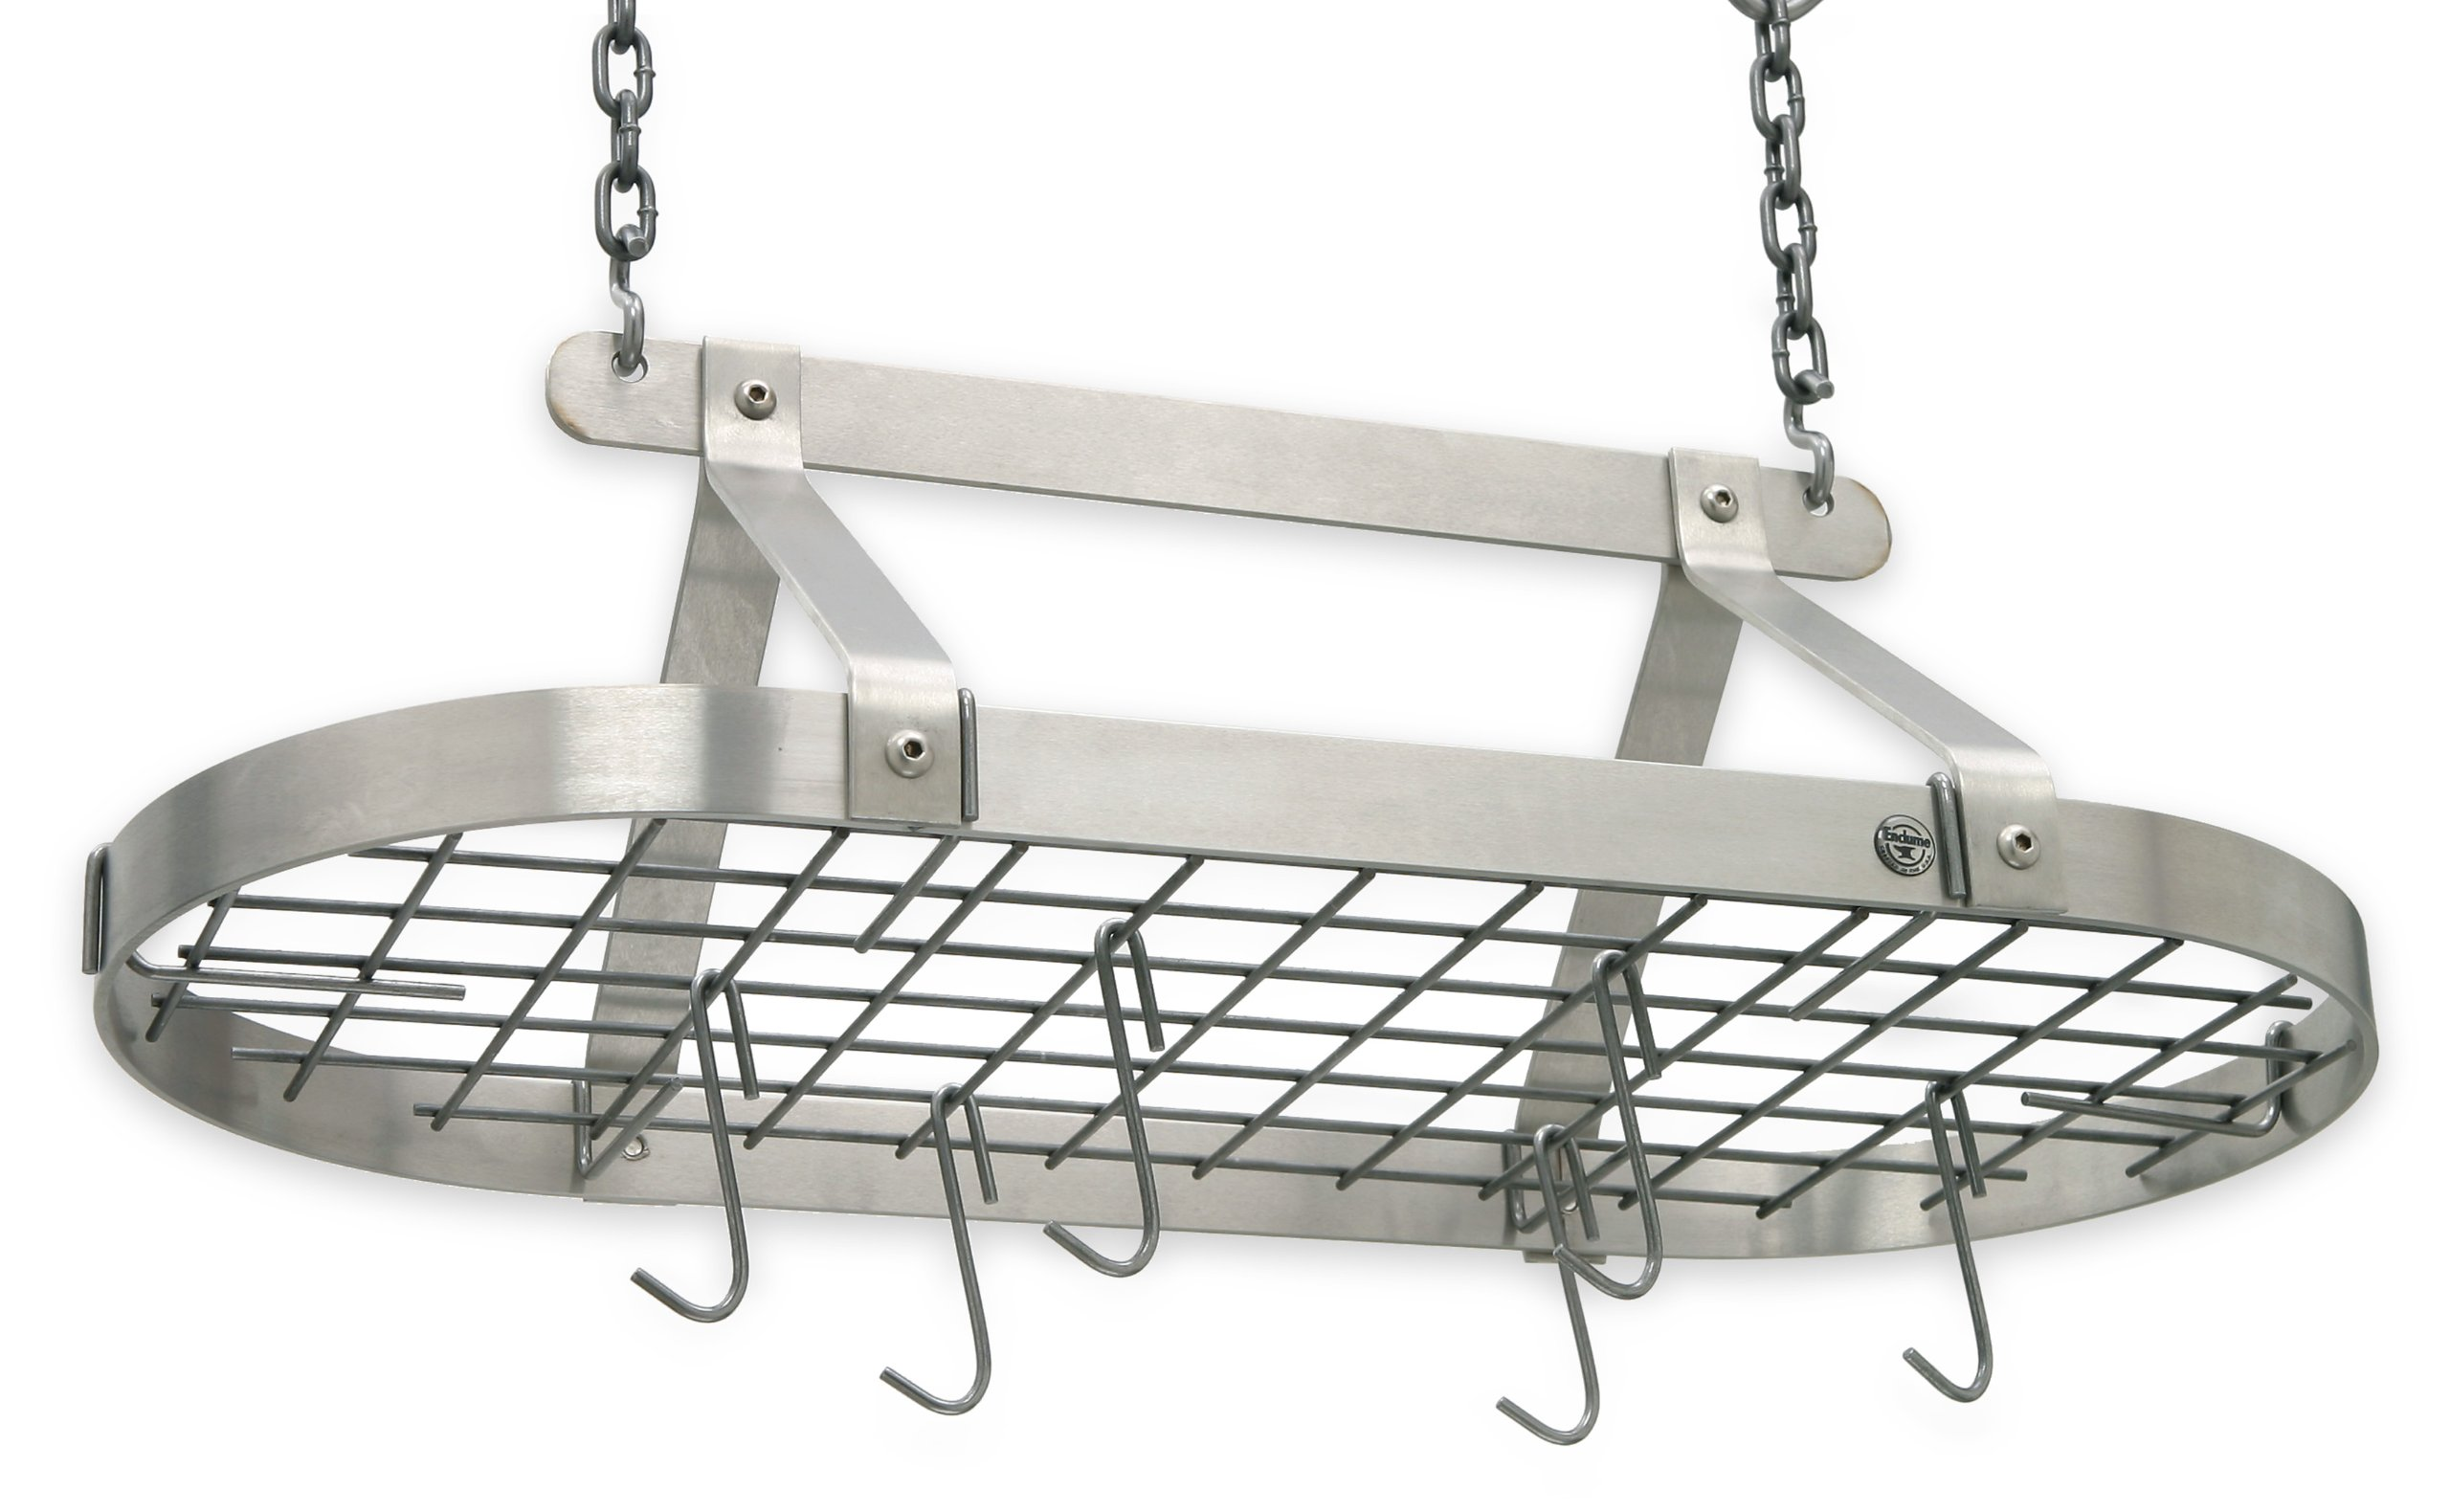 Enclume Décor Classic Oval Ceiling Pot Rack, Stainless Steel by Enclume